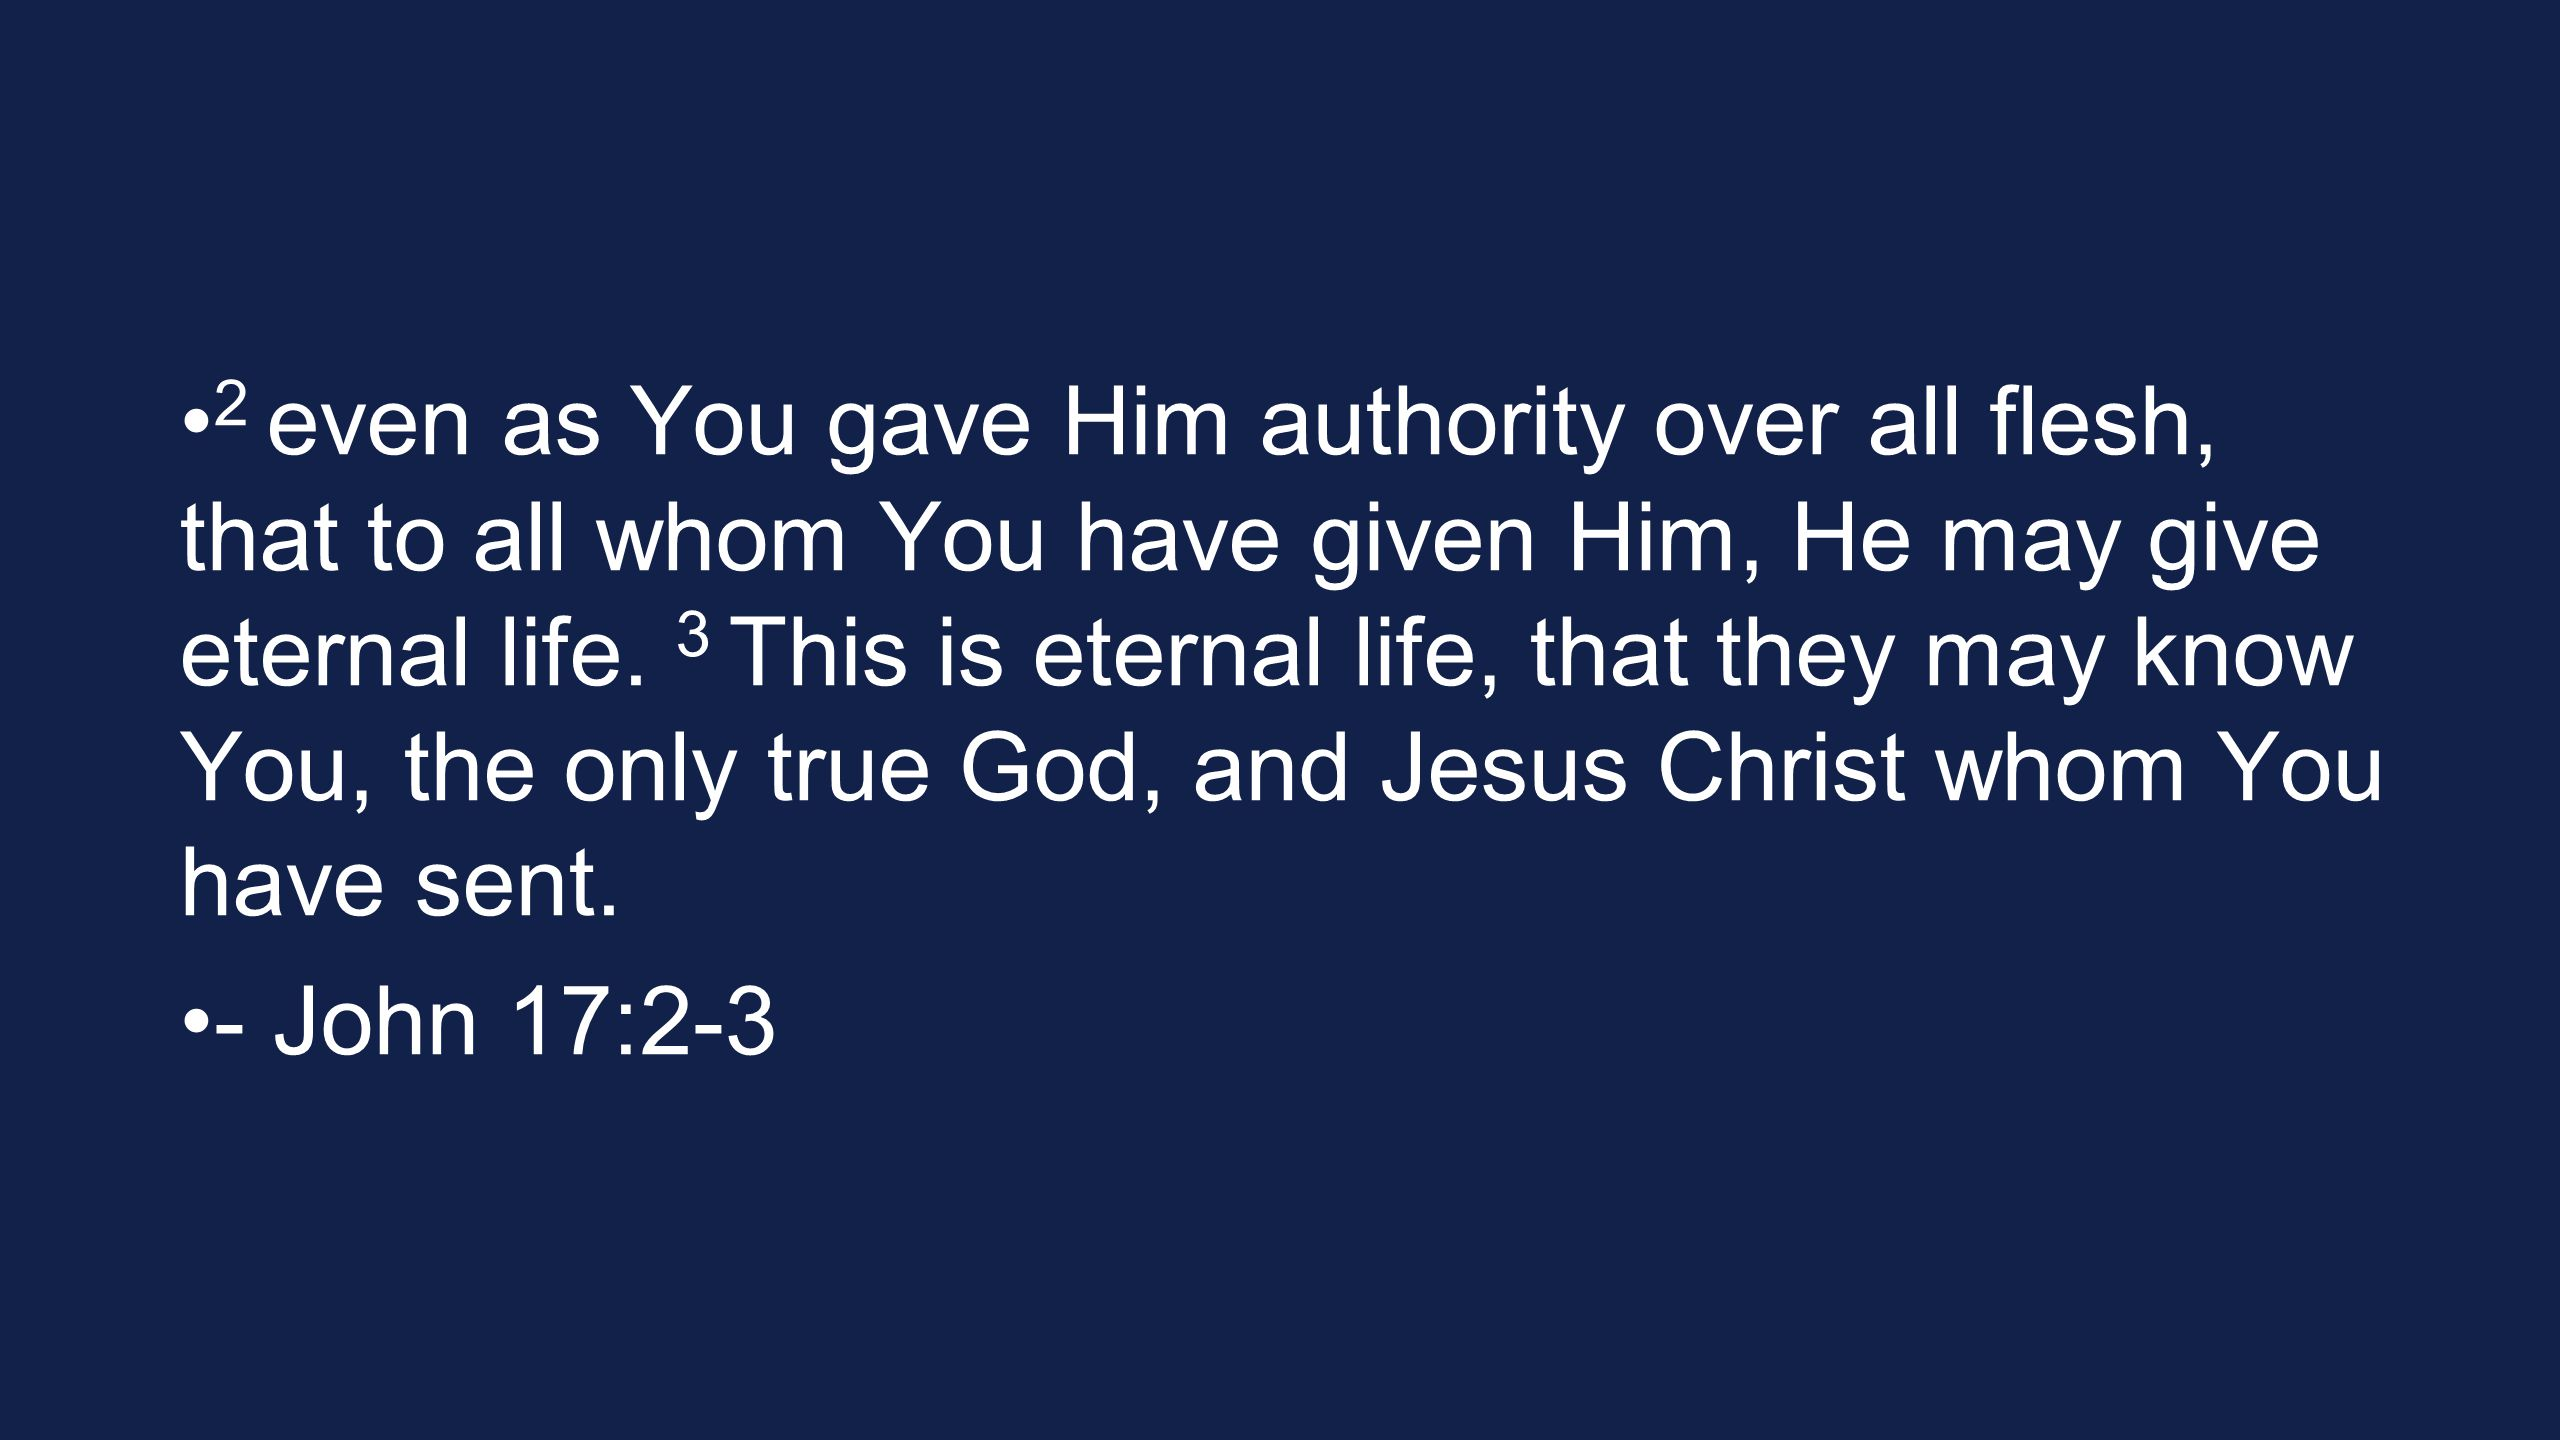 2 even as You gave Him authority over all flesh, that to all whom You have given Him, He may give eternal life. 3 This is eternal life, that they may